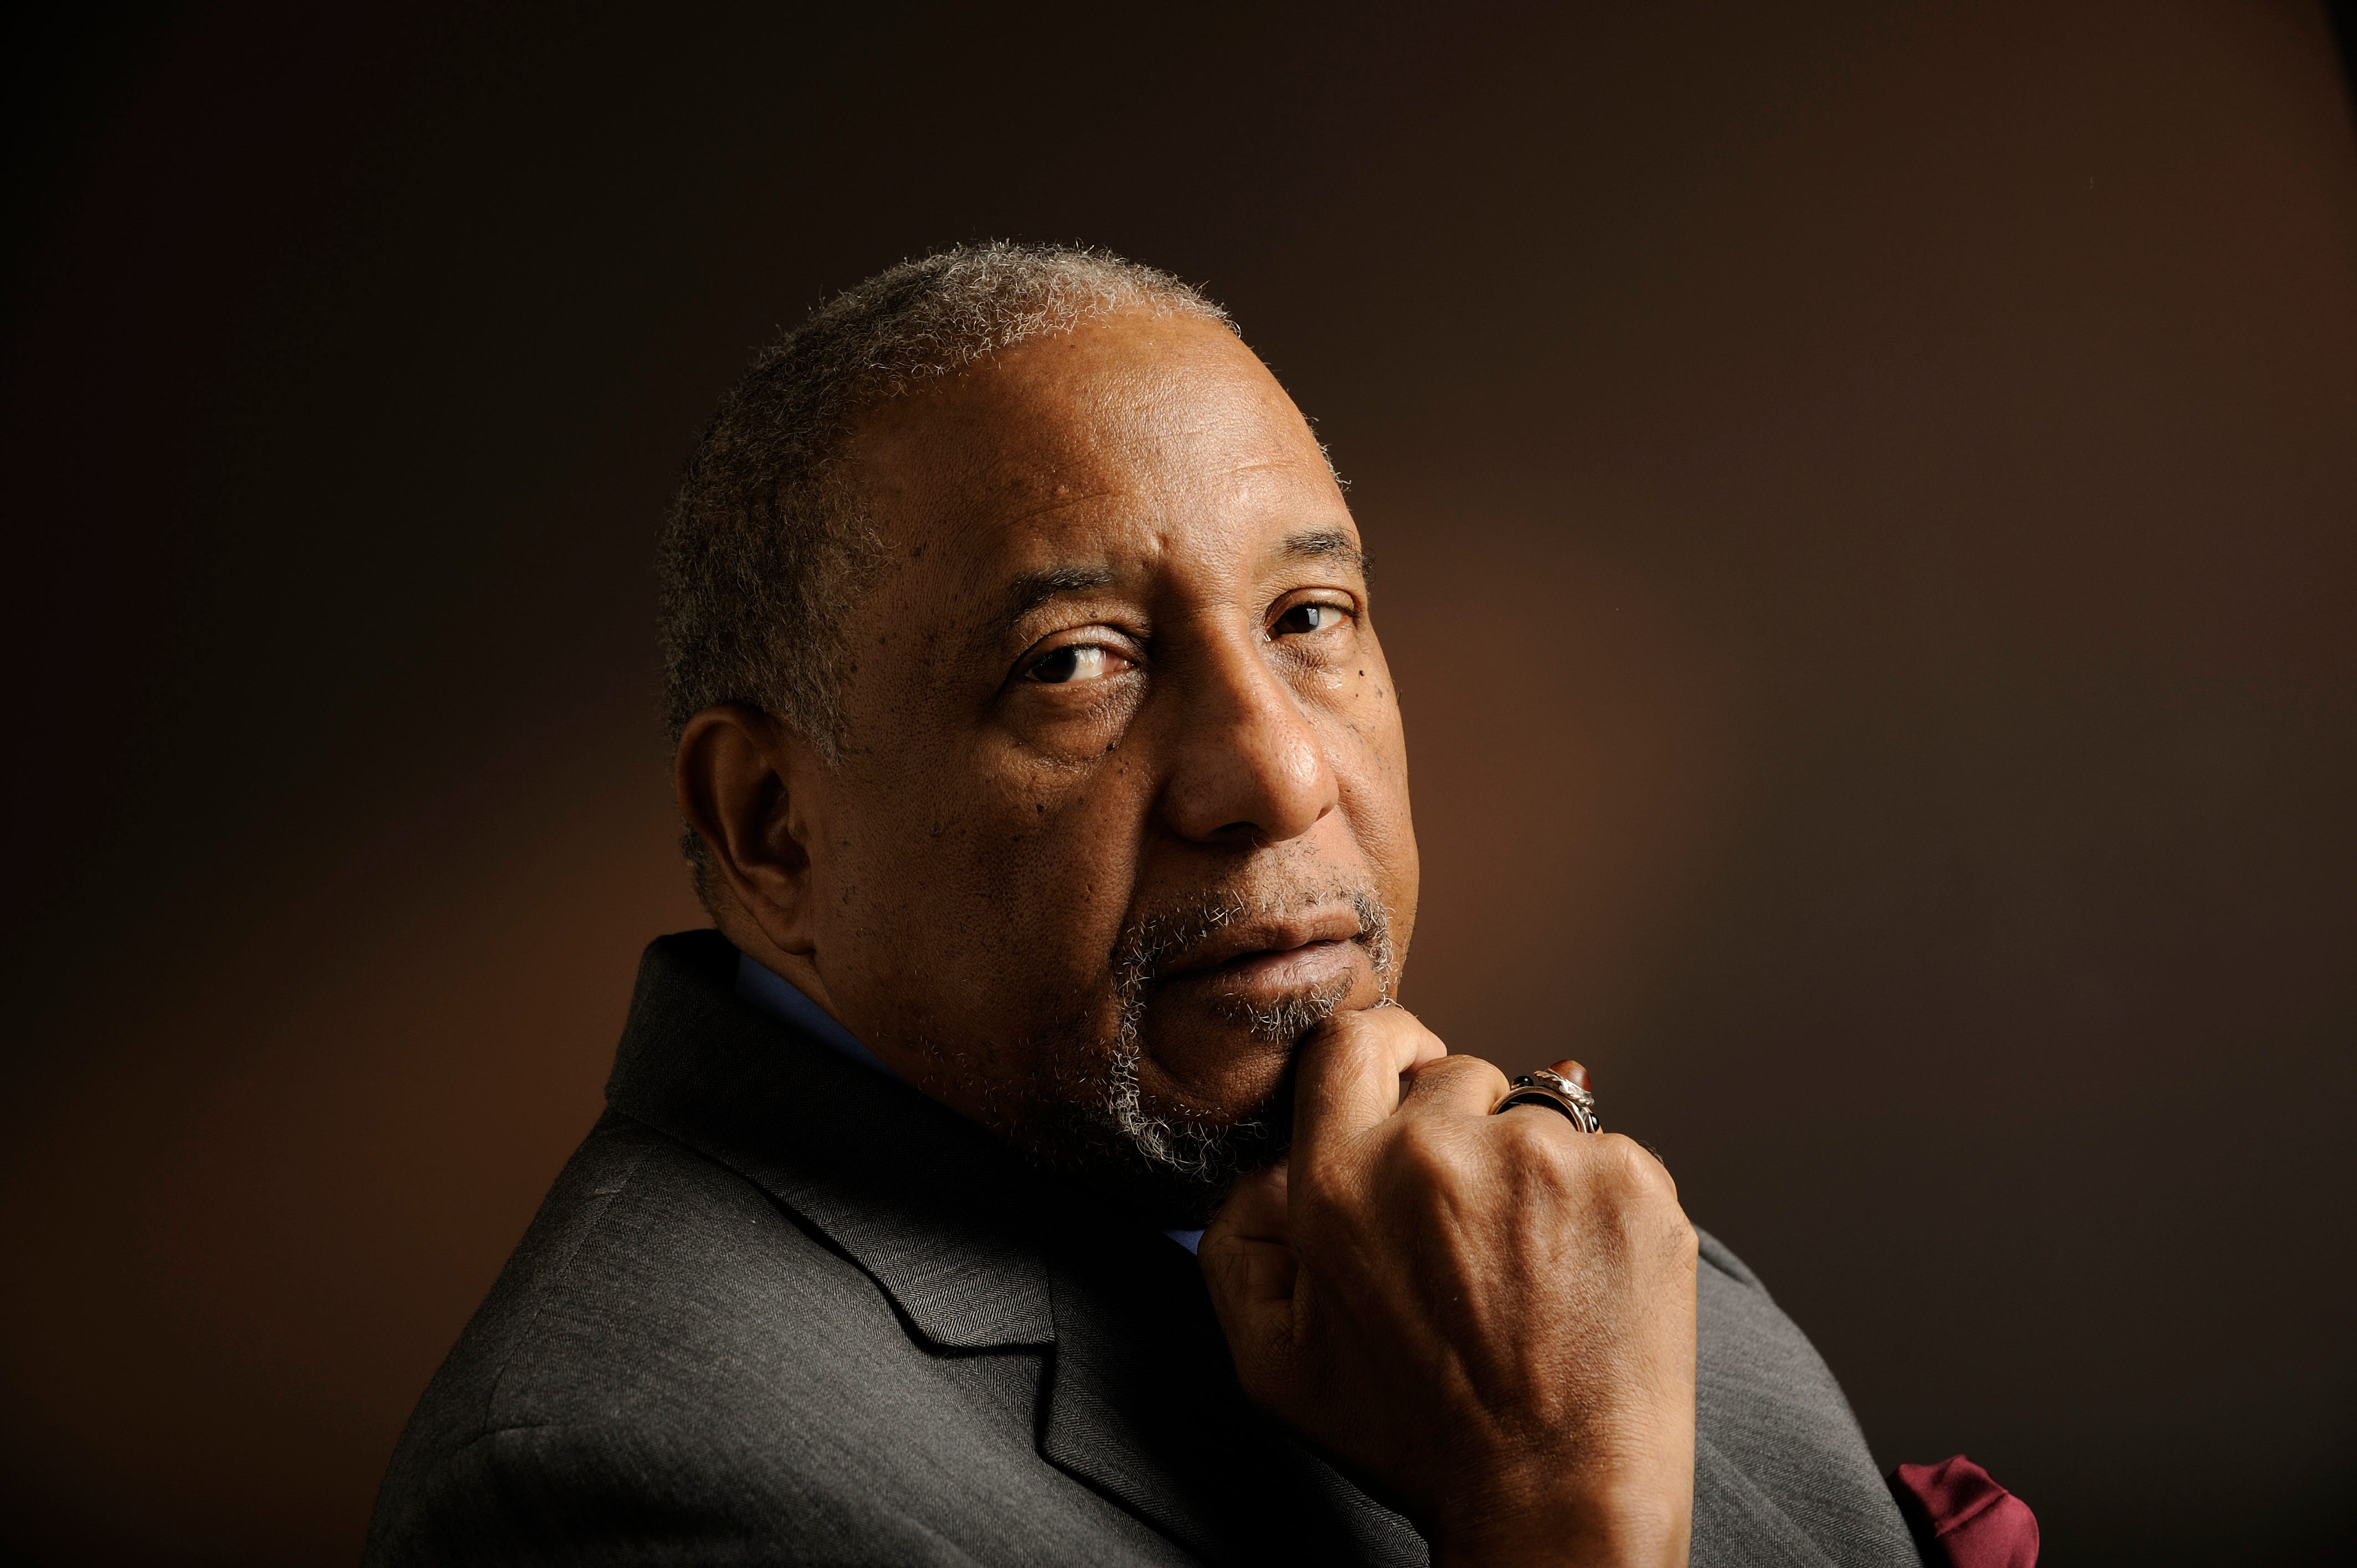 Dr. Bernard LaFayette, a Professor of Theology at Emory University in Atlanta, is seen in this 2010 file photo.